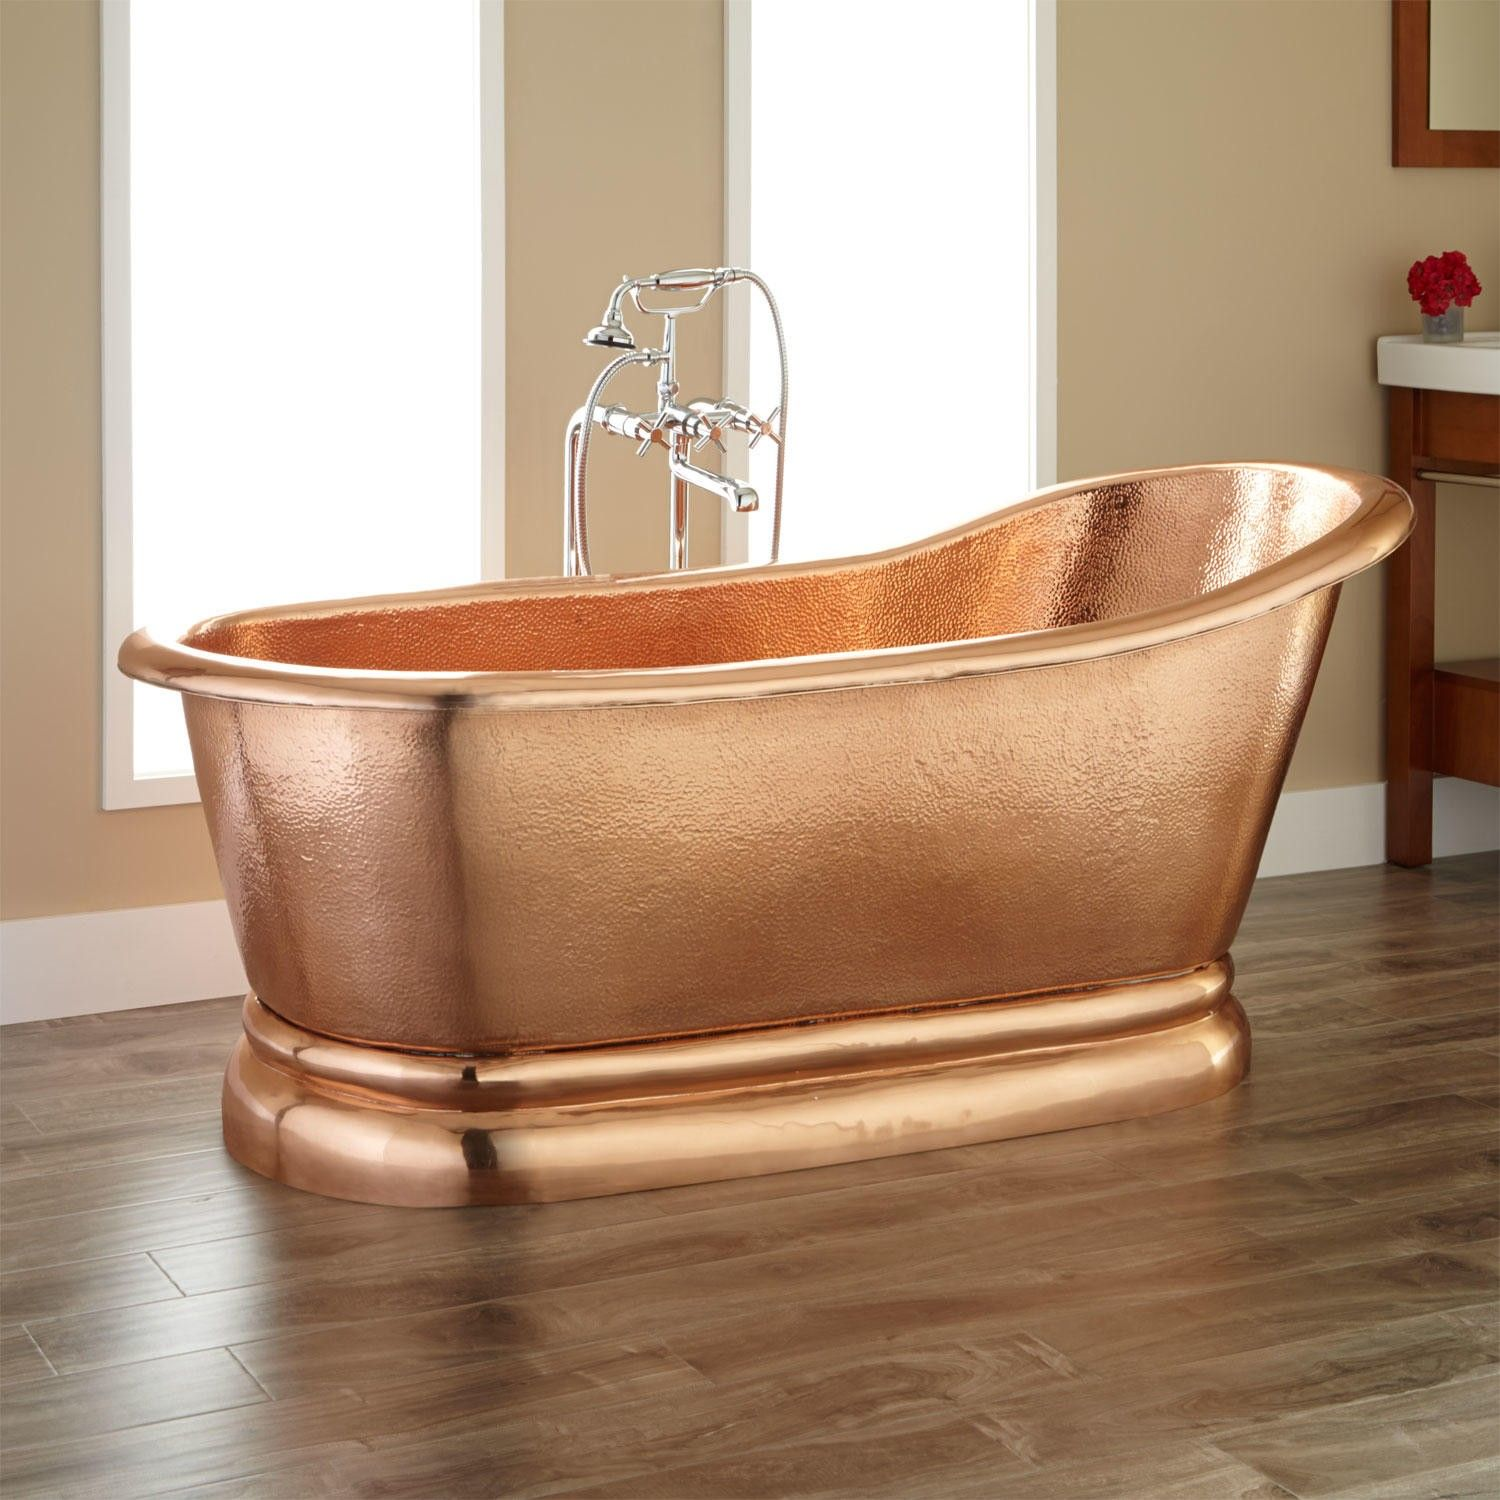 Superbe Copper Bathtubs: Turning Your Bathroom Into An Antique Paradise